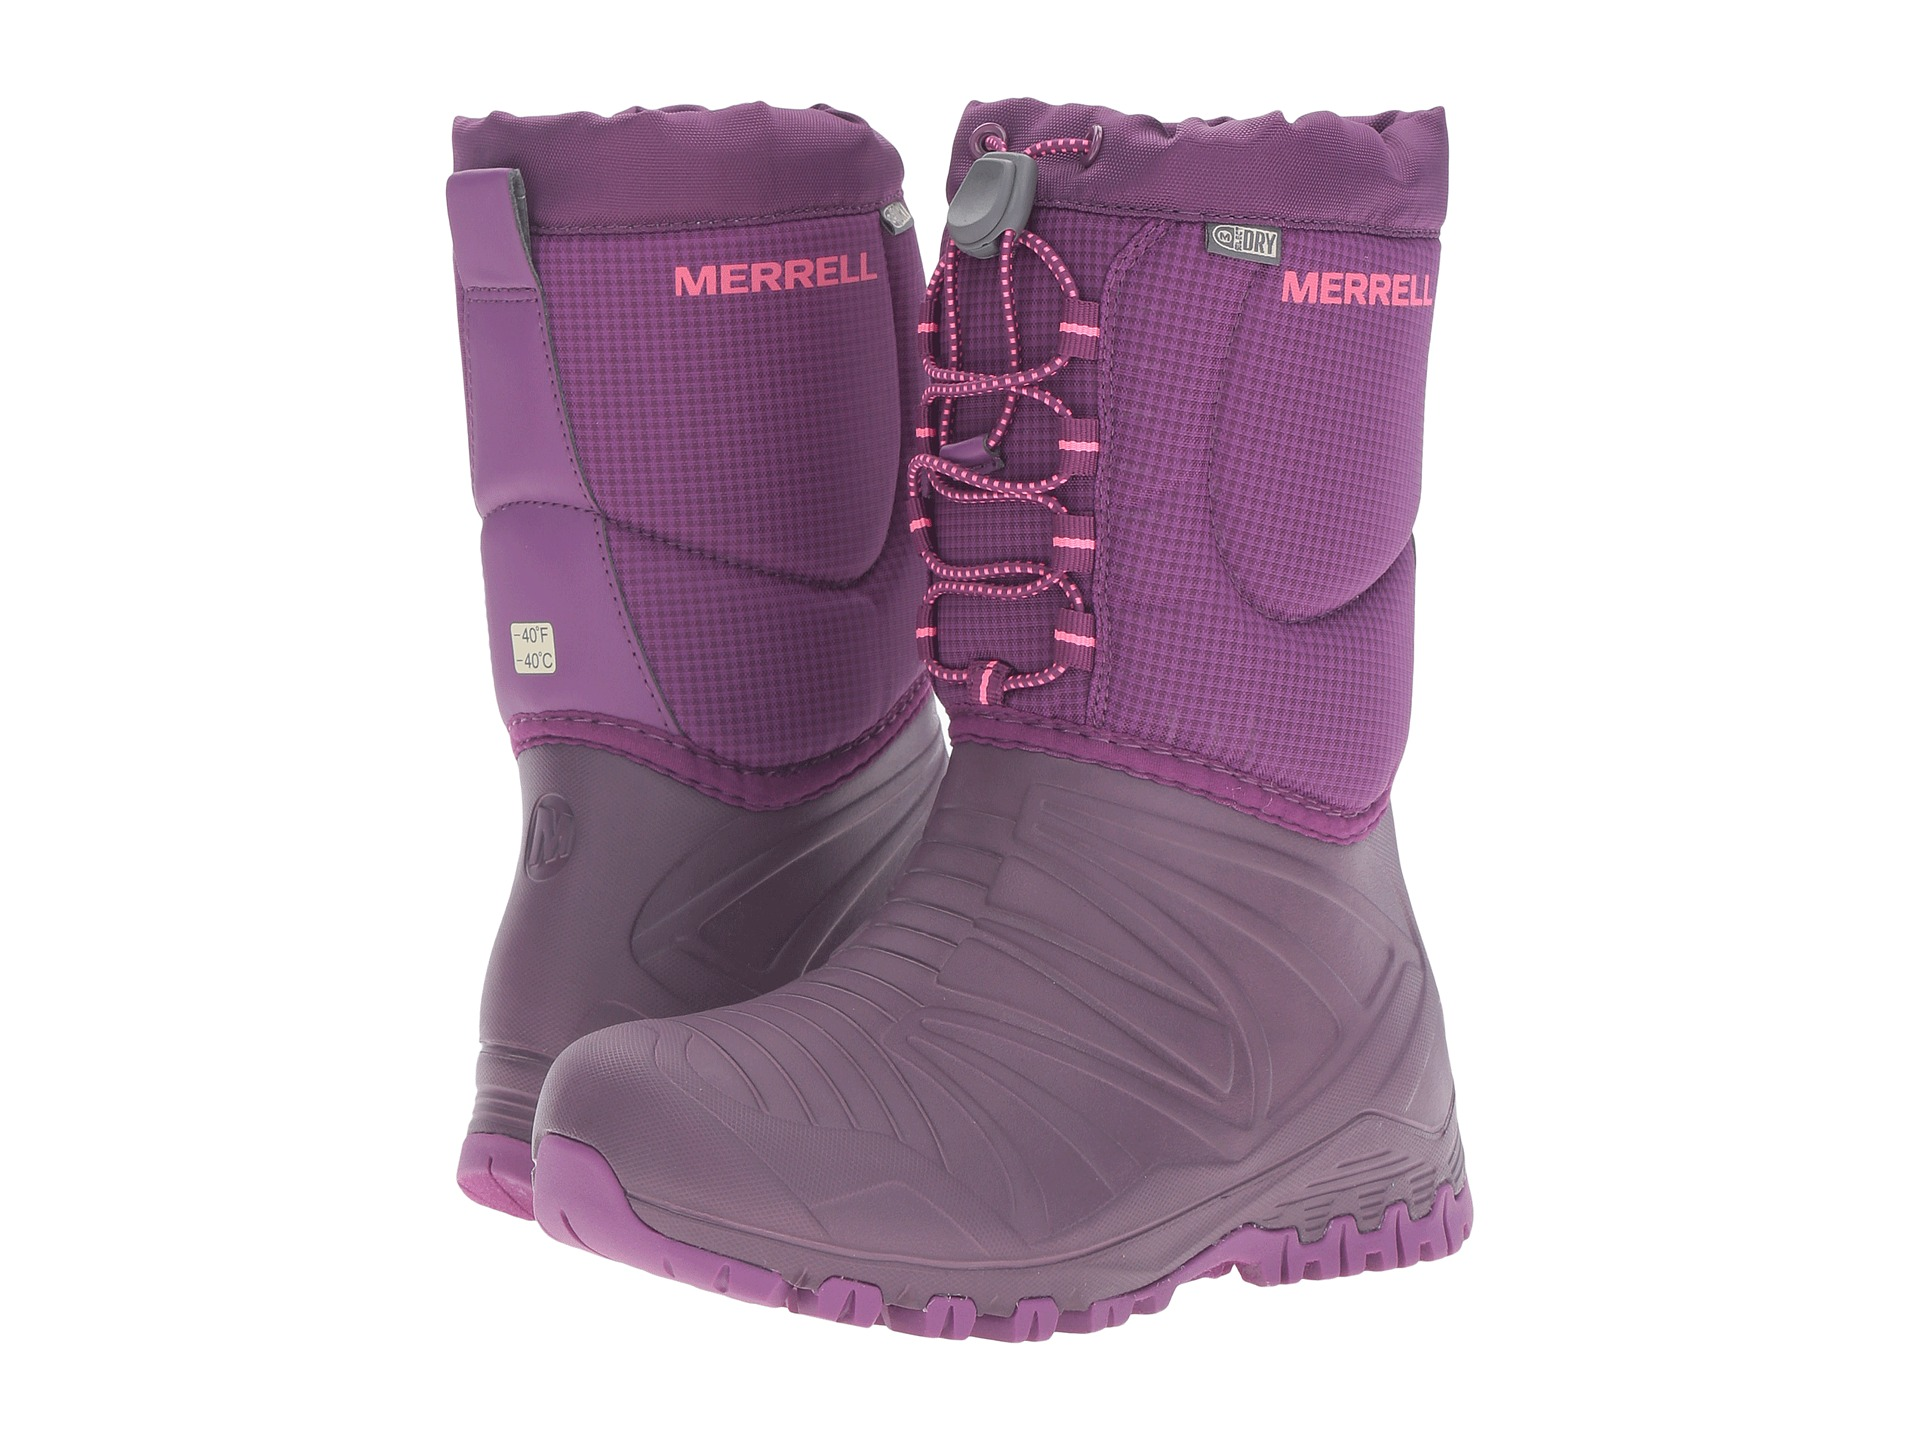 Boots, Snow Boots, Girls | Shipped Free at Zappos